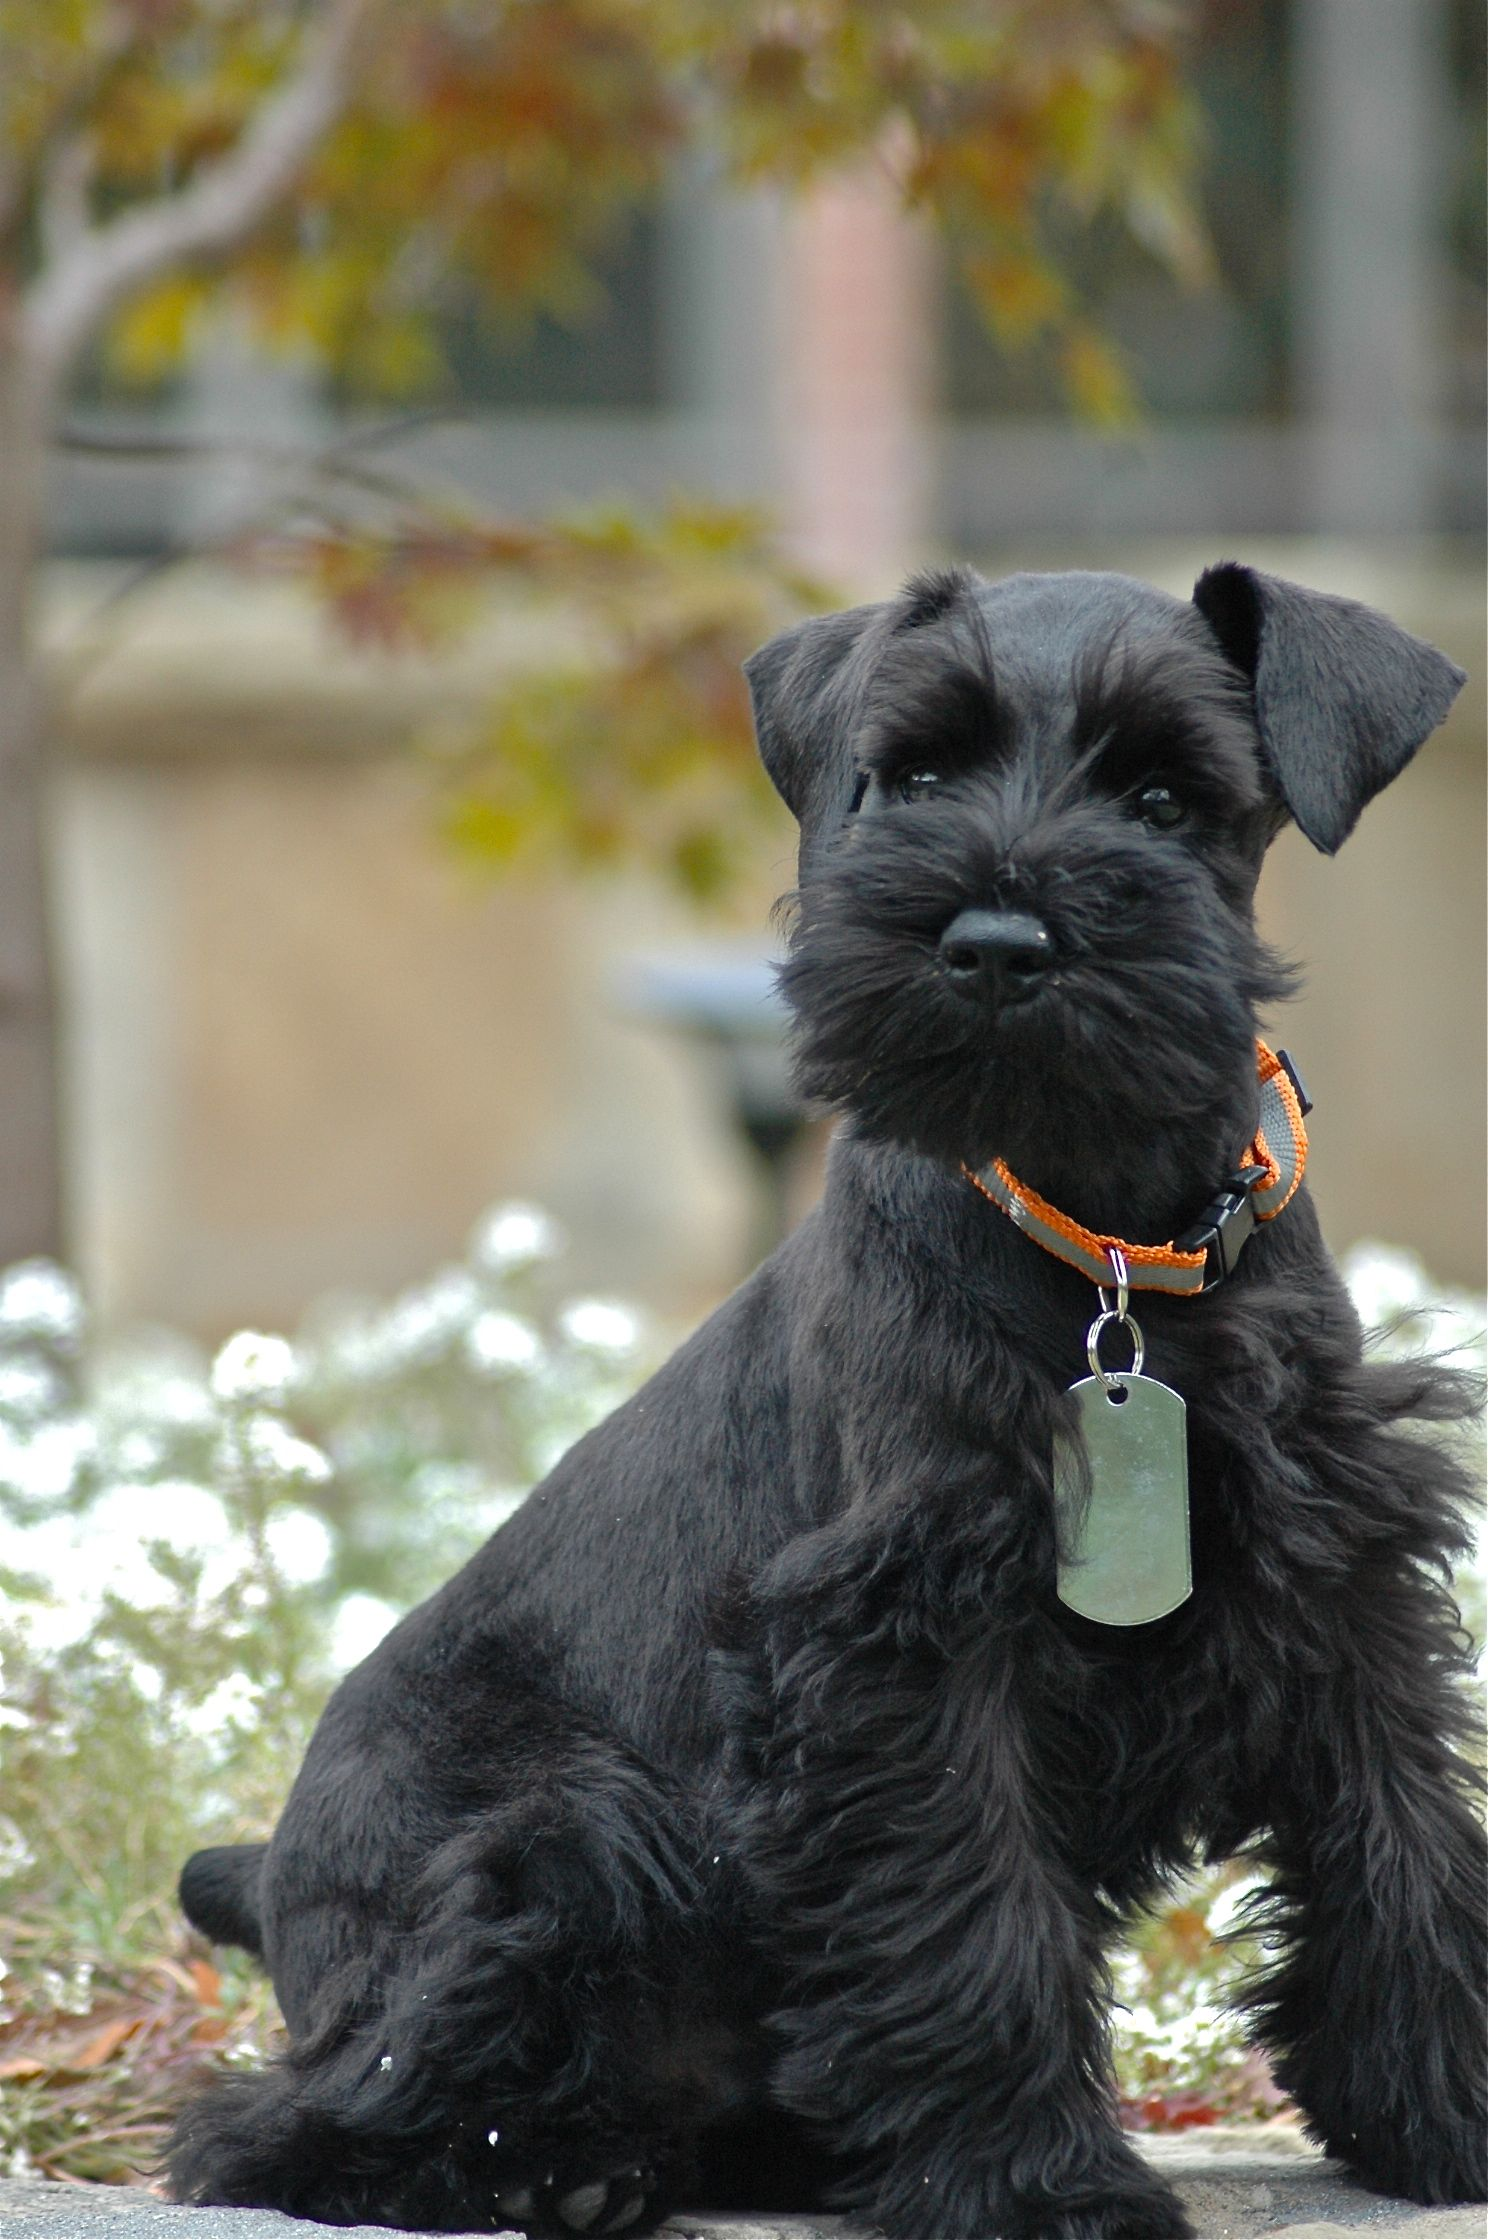 Love a black schnauzer. Reminds me of my General